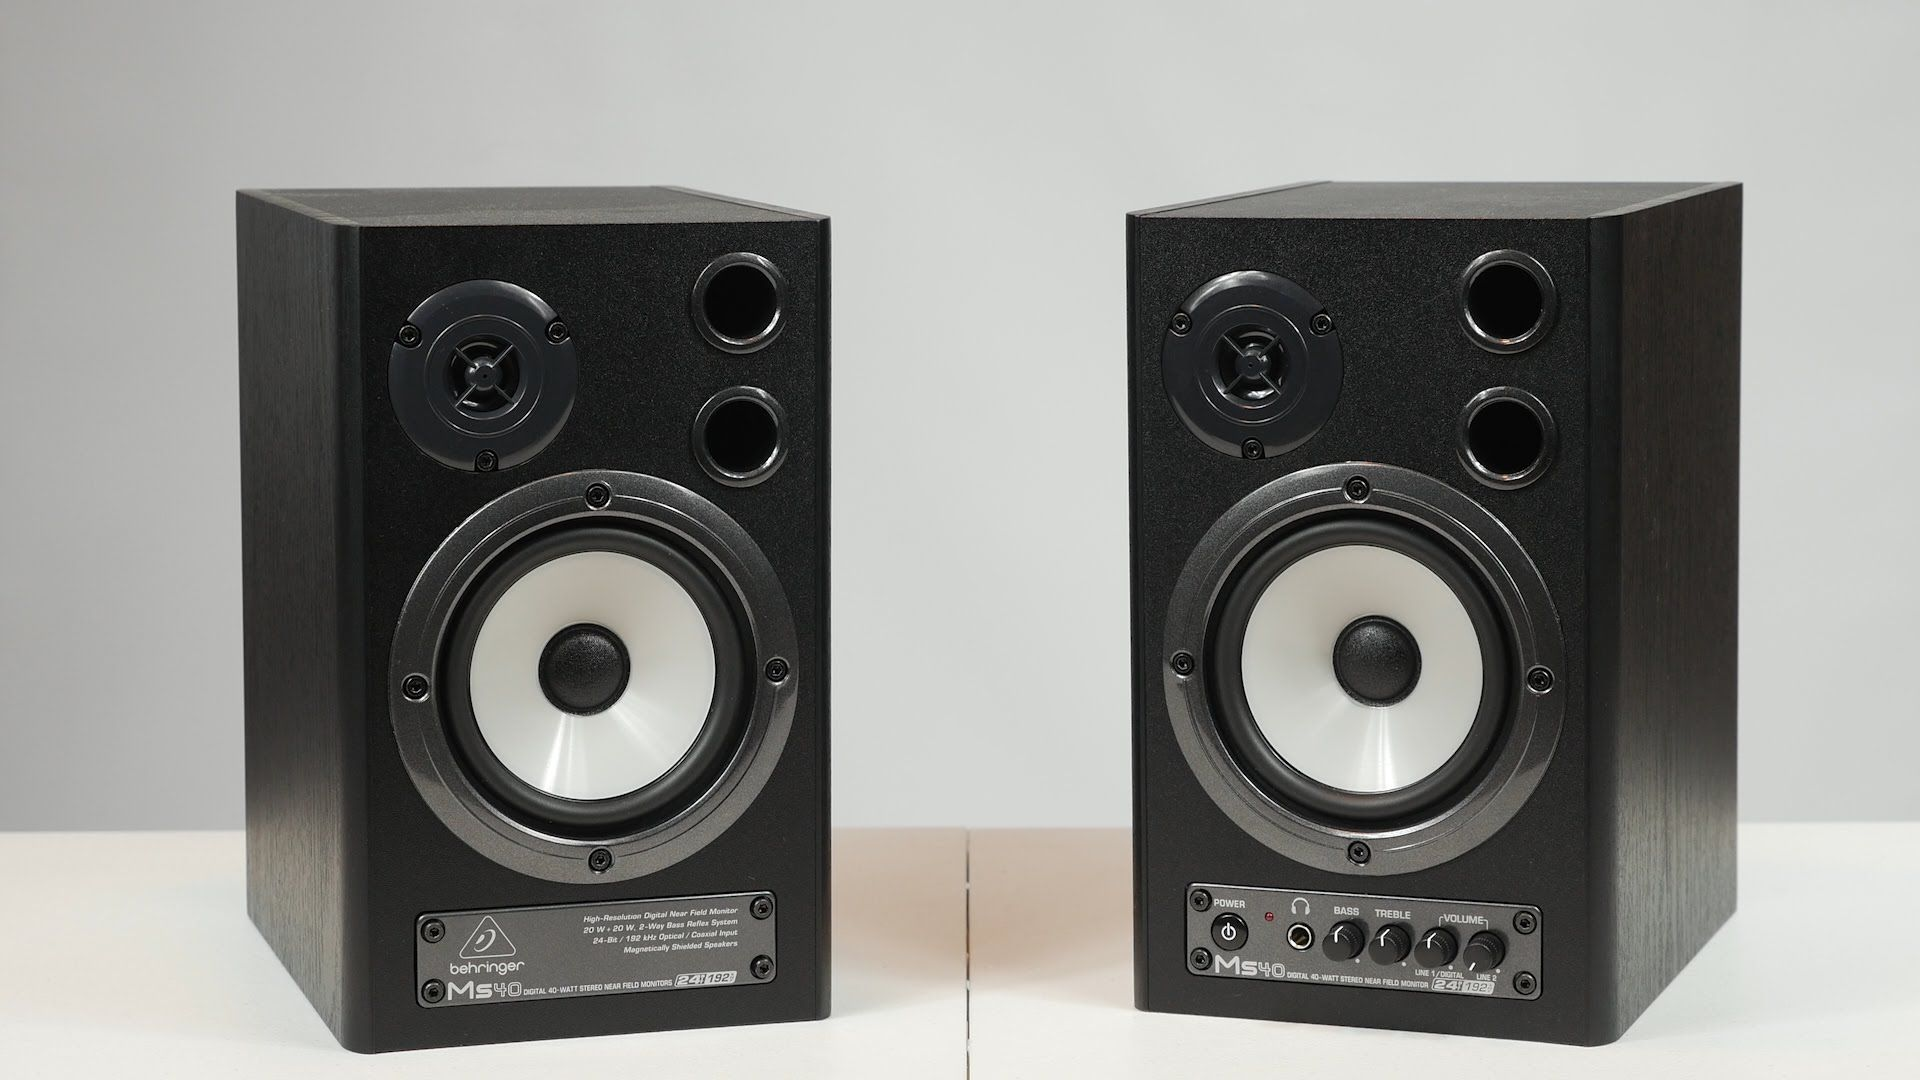 Great Budget Studio Monitors Speakers For Sound Music Mixing Studio Monitors Monitor Speakers Music Mixing